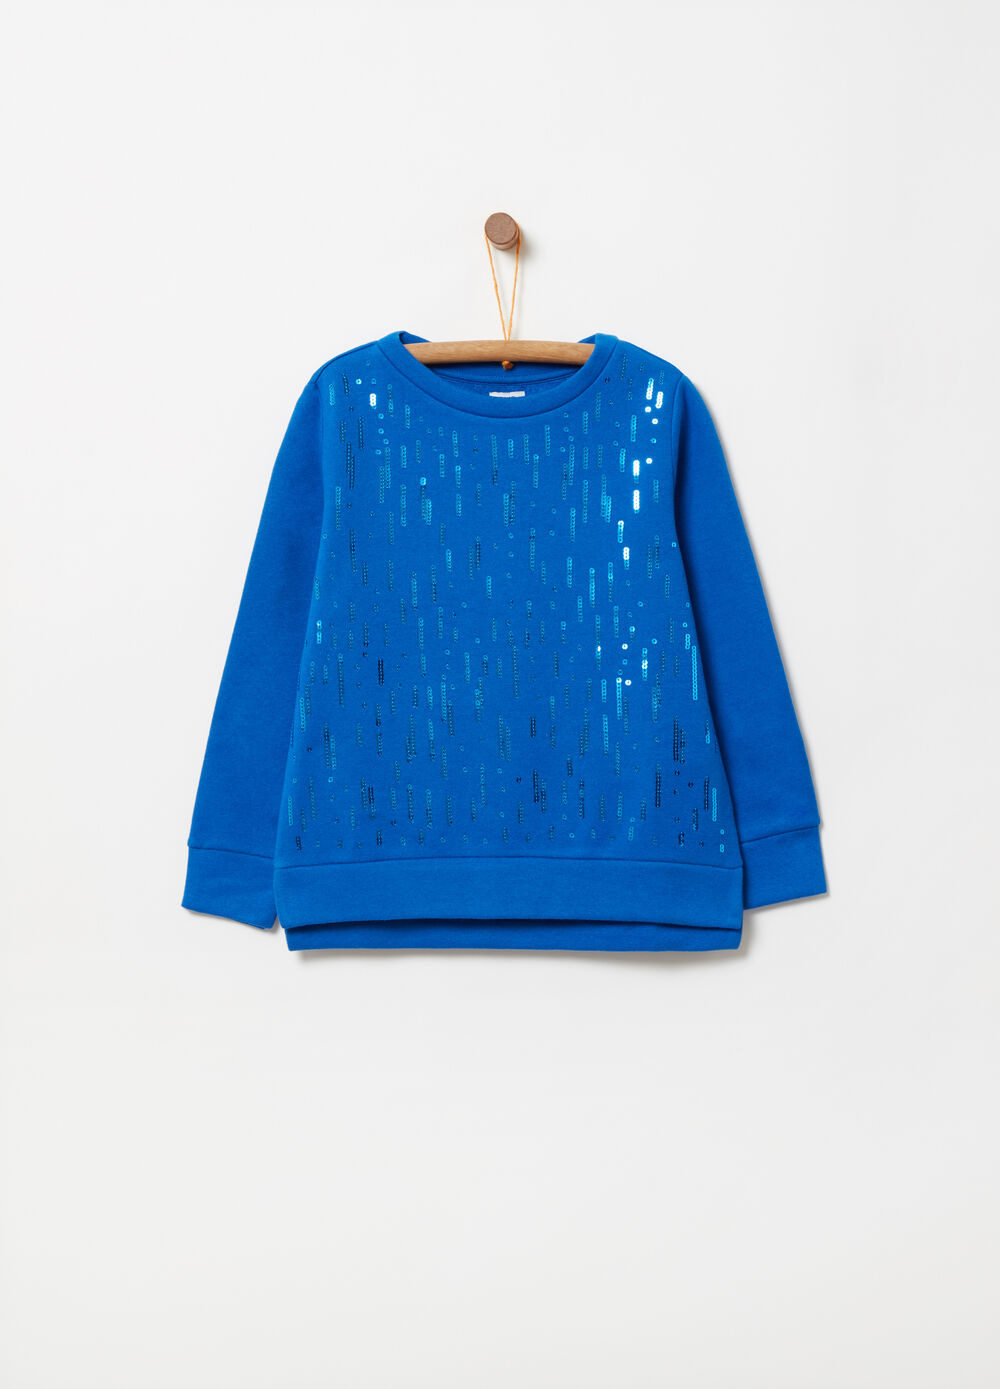 Sweatshirt with embroidery covered in sequins